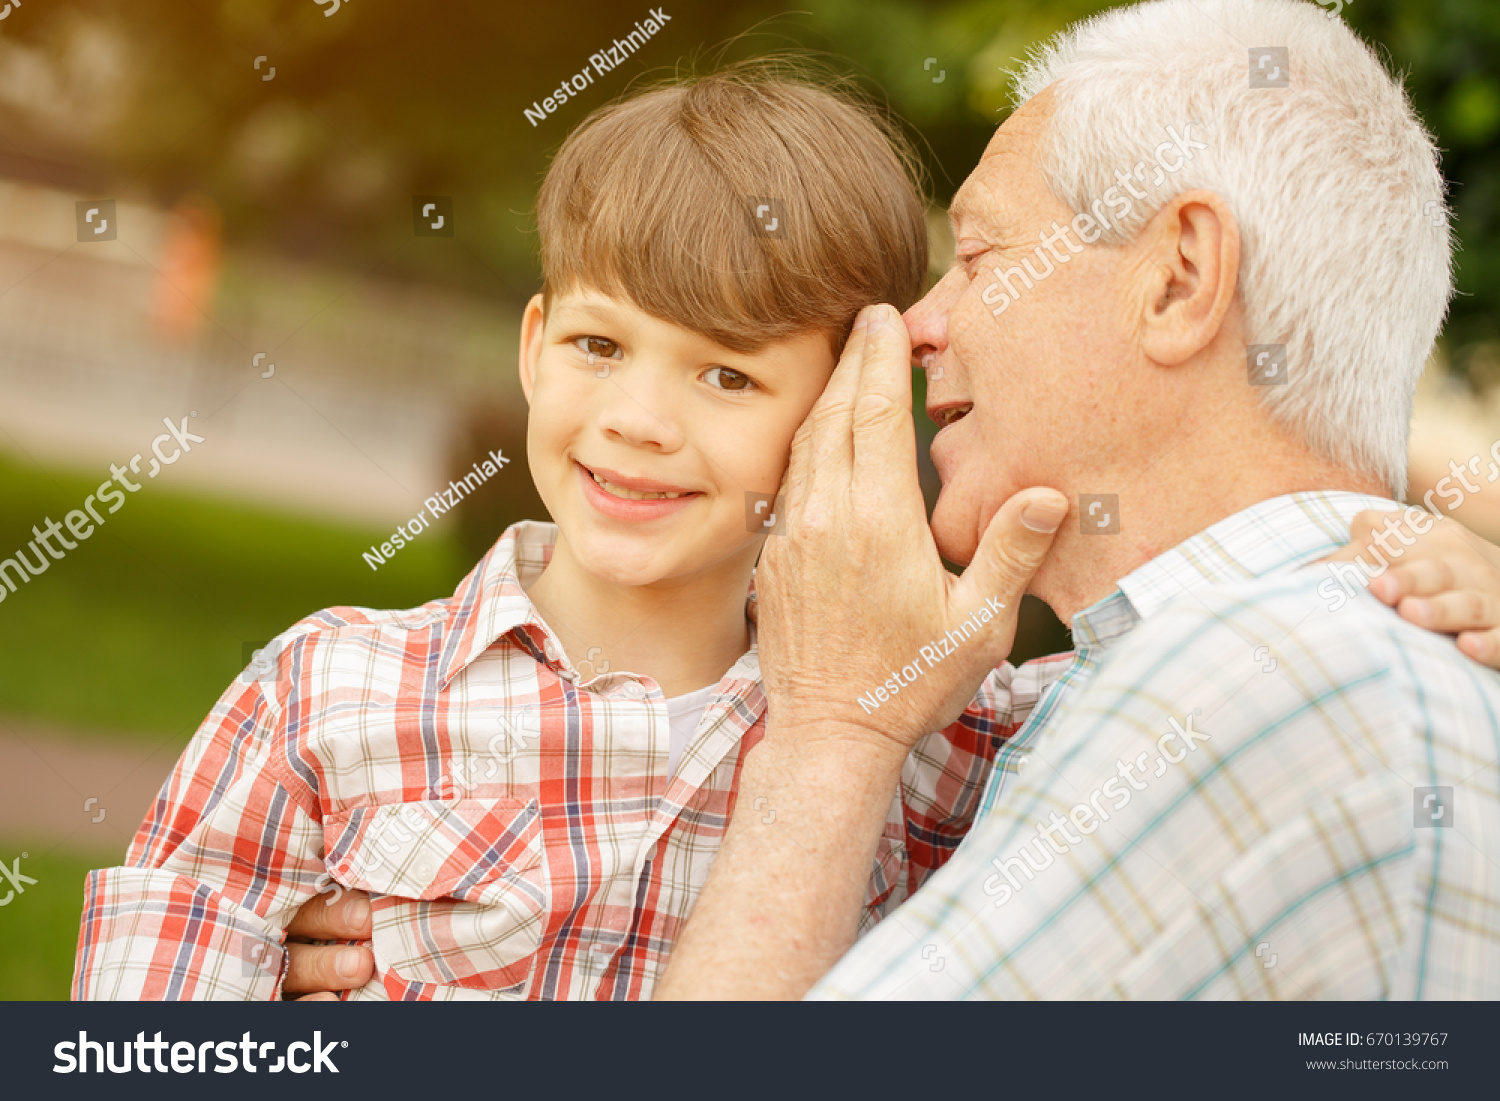 happy little boy smiling camera while stock photo (royalty free